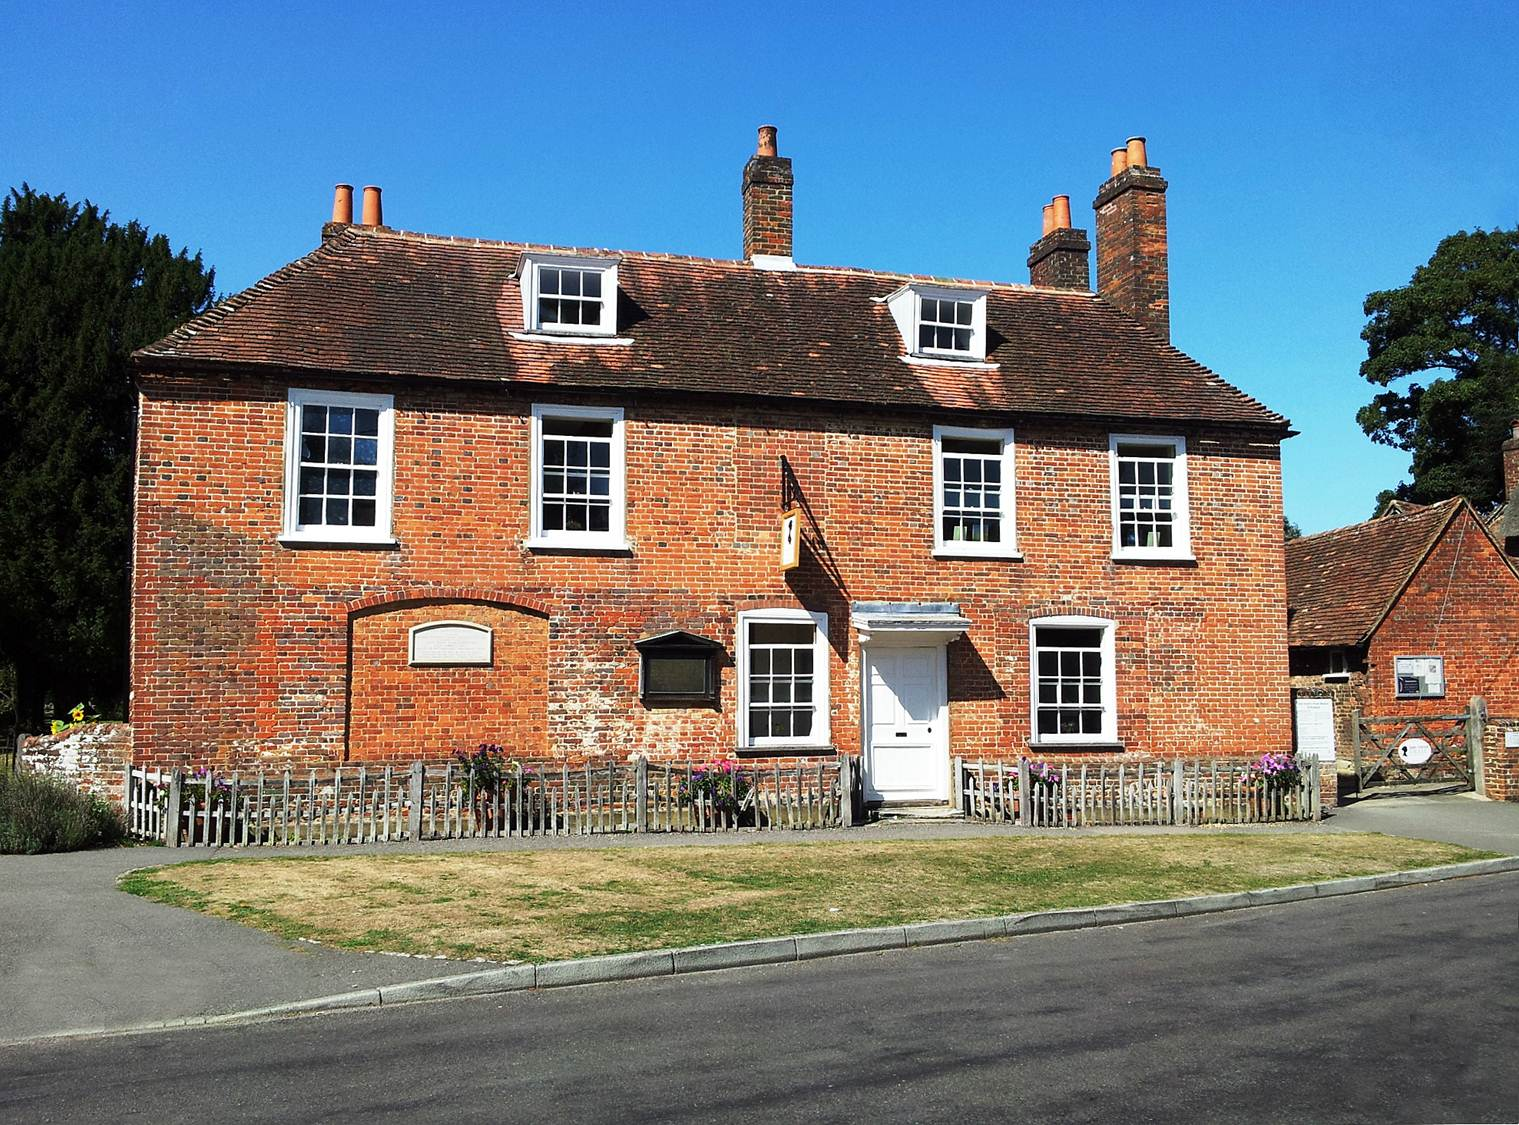 Chawton Cottage (now known as the Jane Austen's House Museum).  Credit: Caroline Jane Knight.